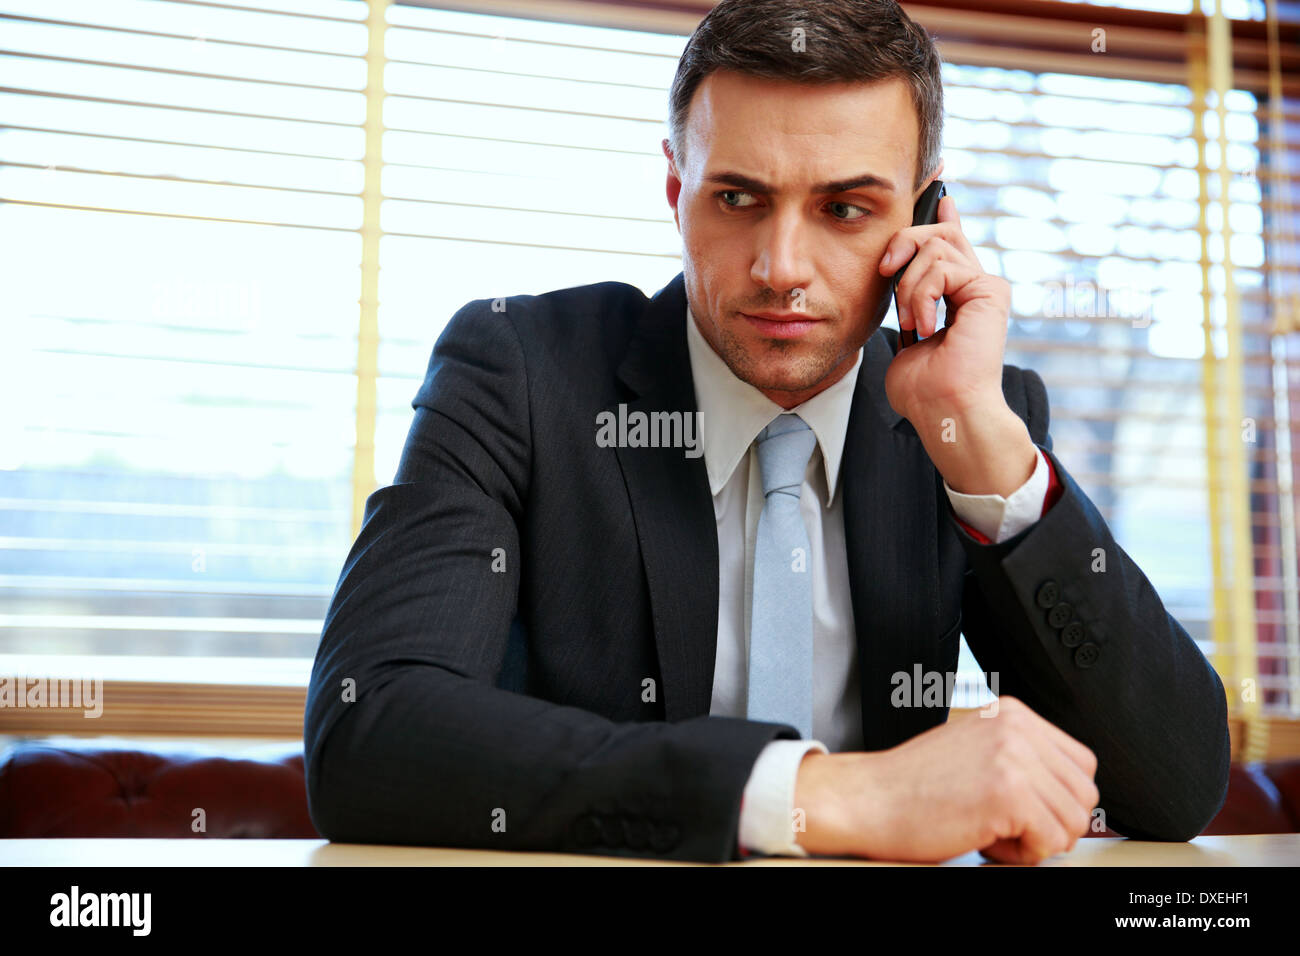 Pensive businessman sitting and talking on the phone at office - Stock Image